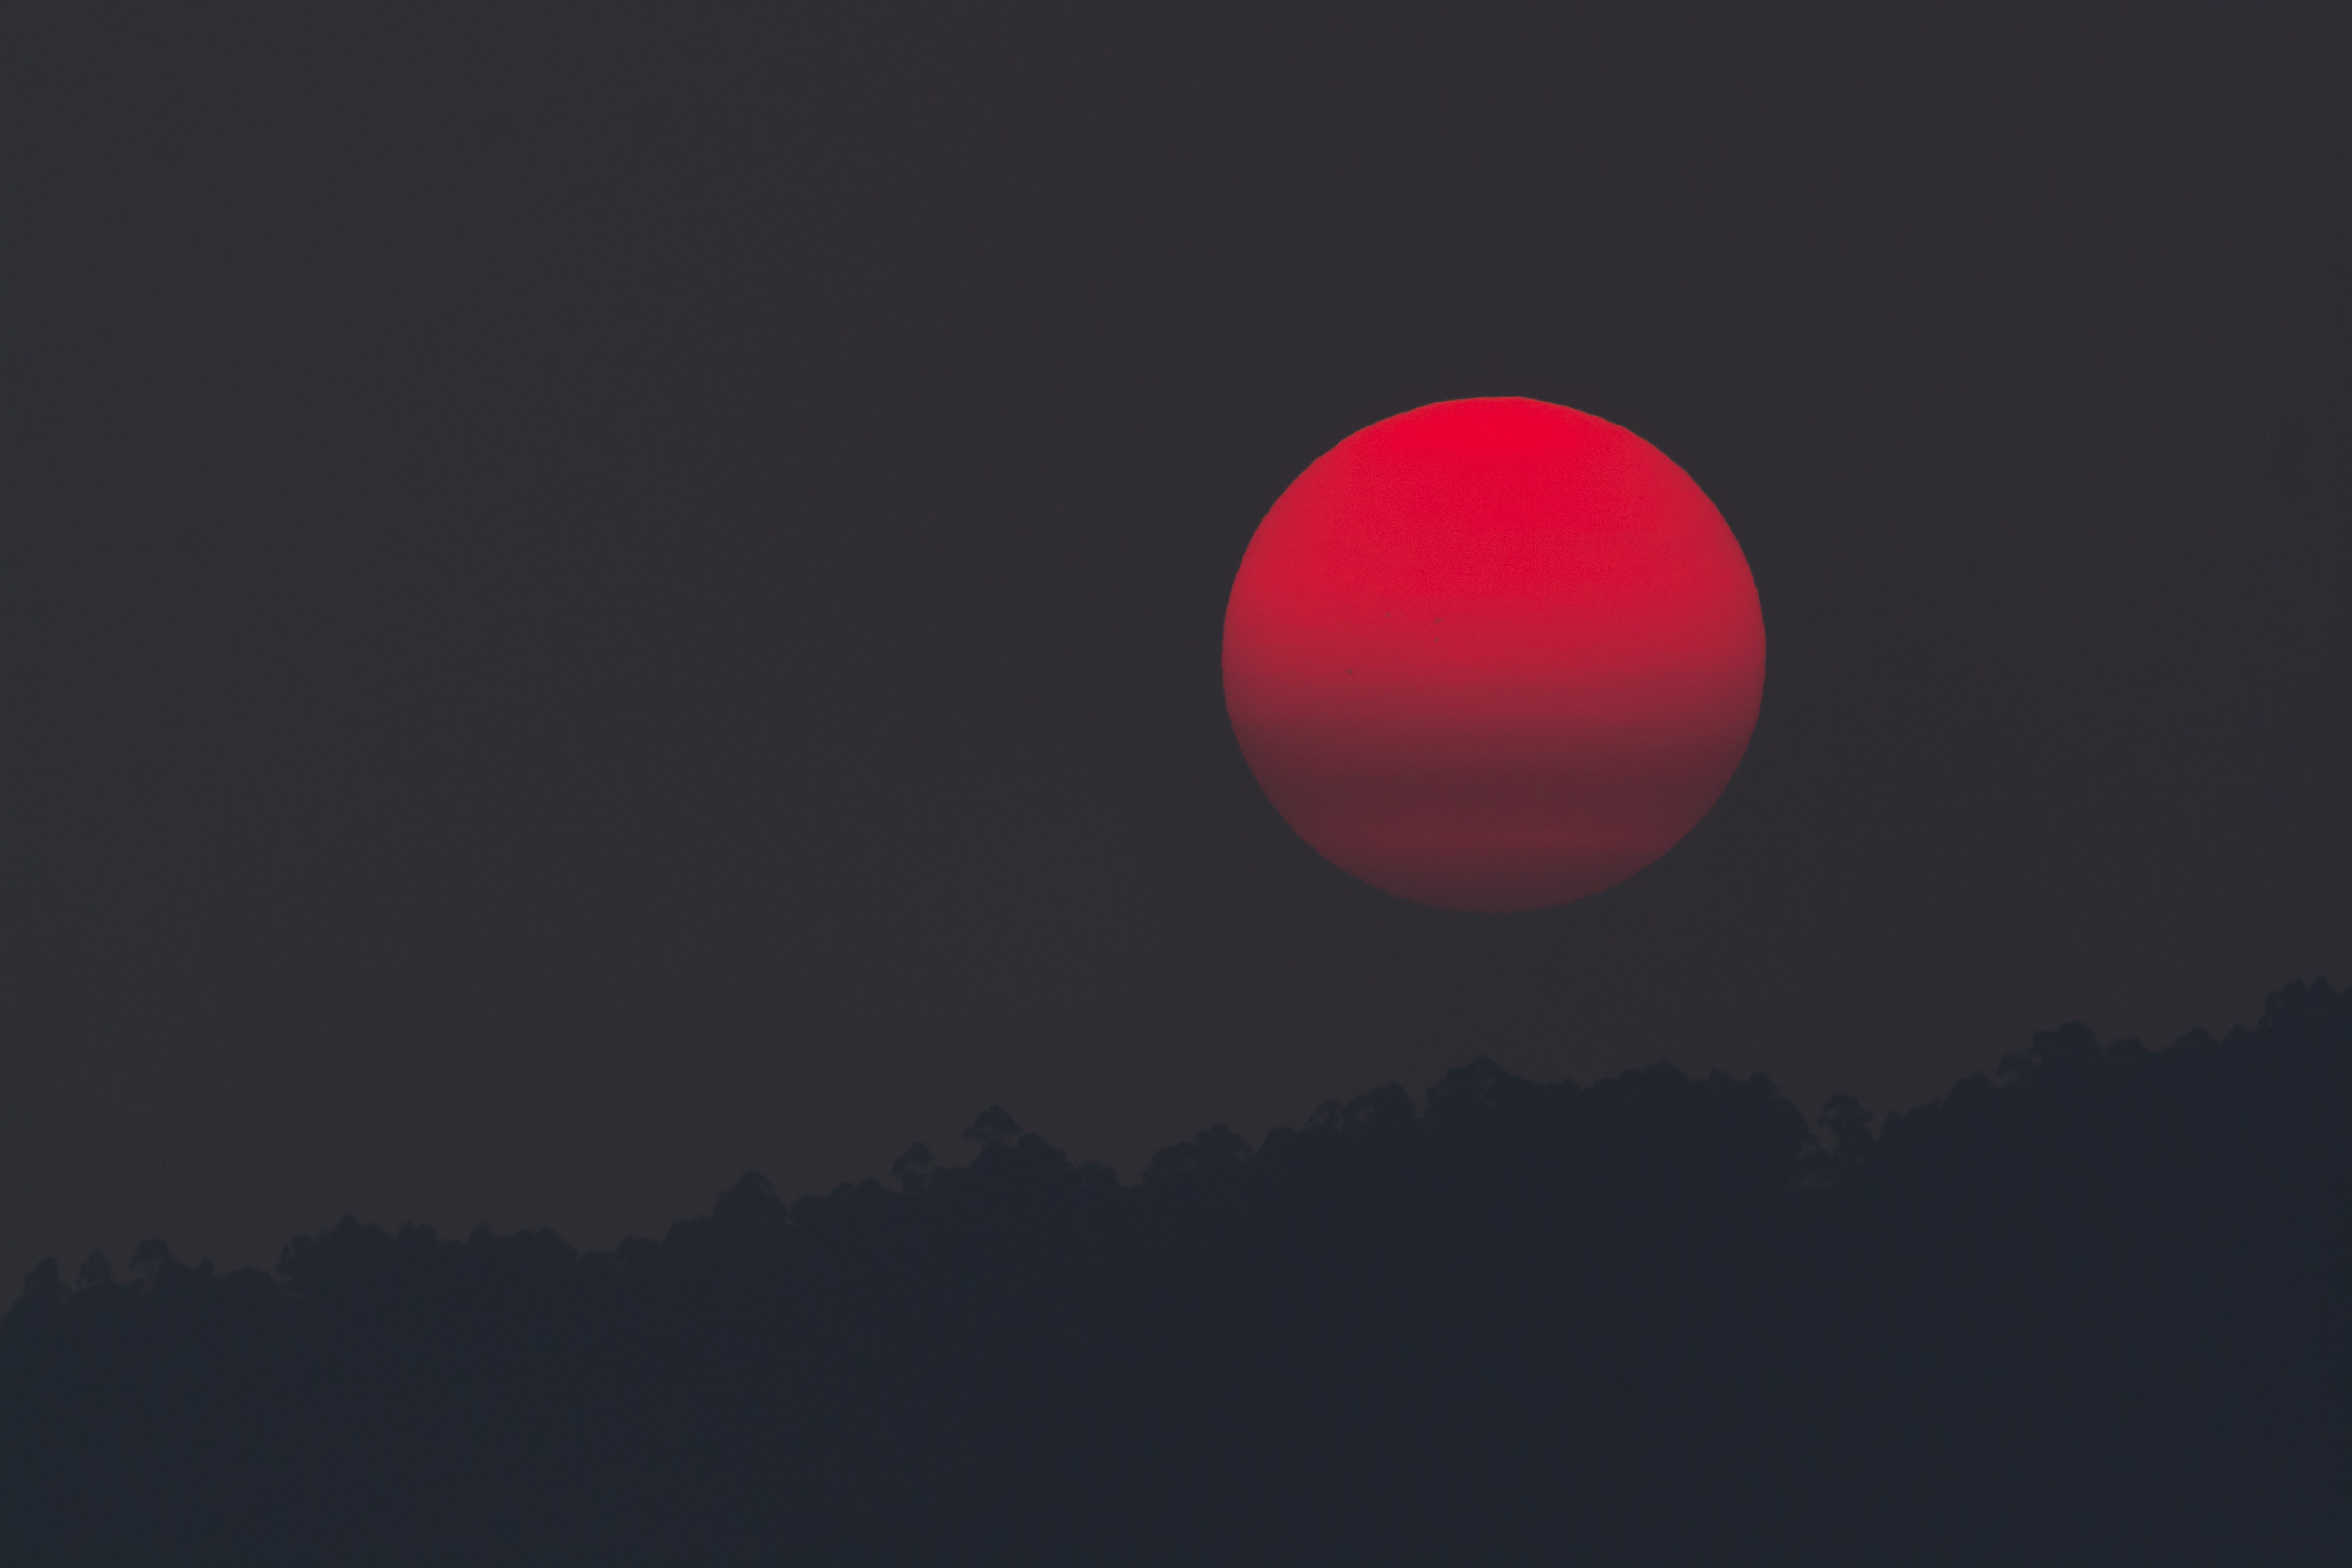 Red Moon during Night Time